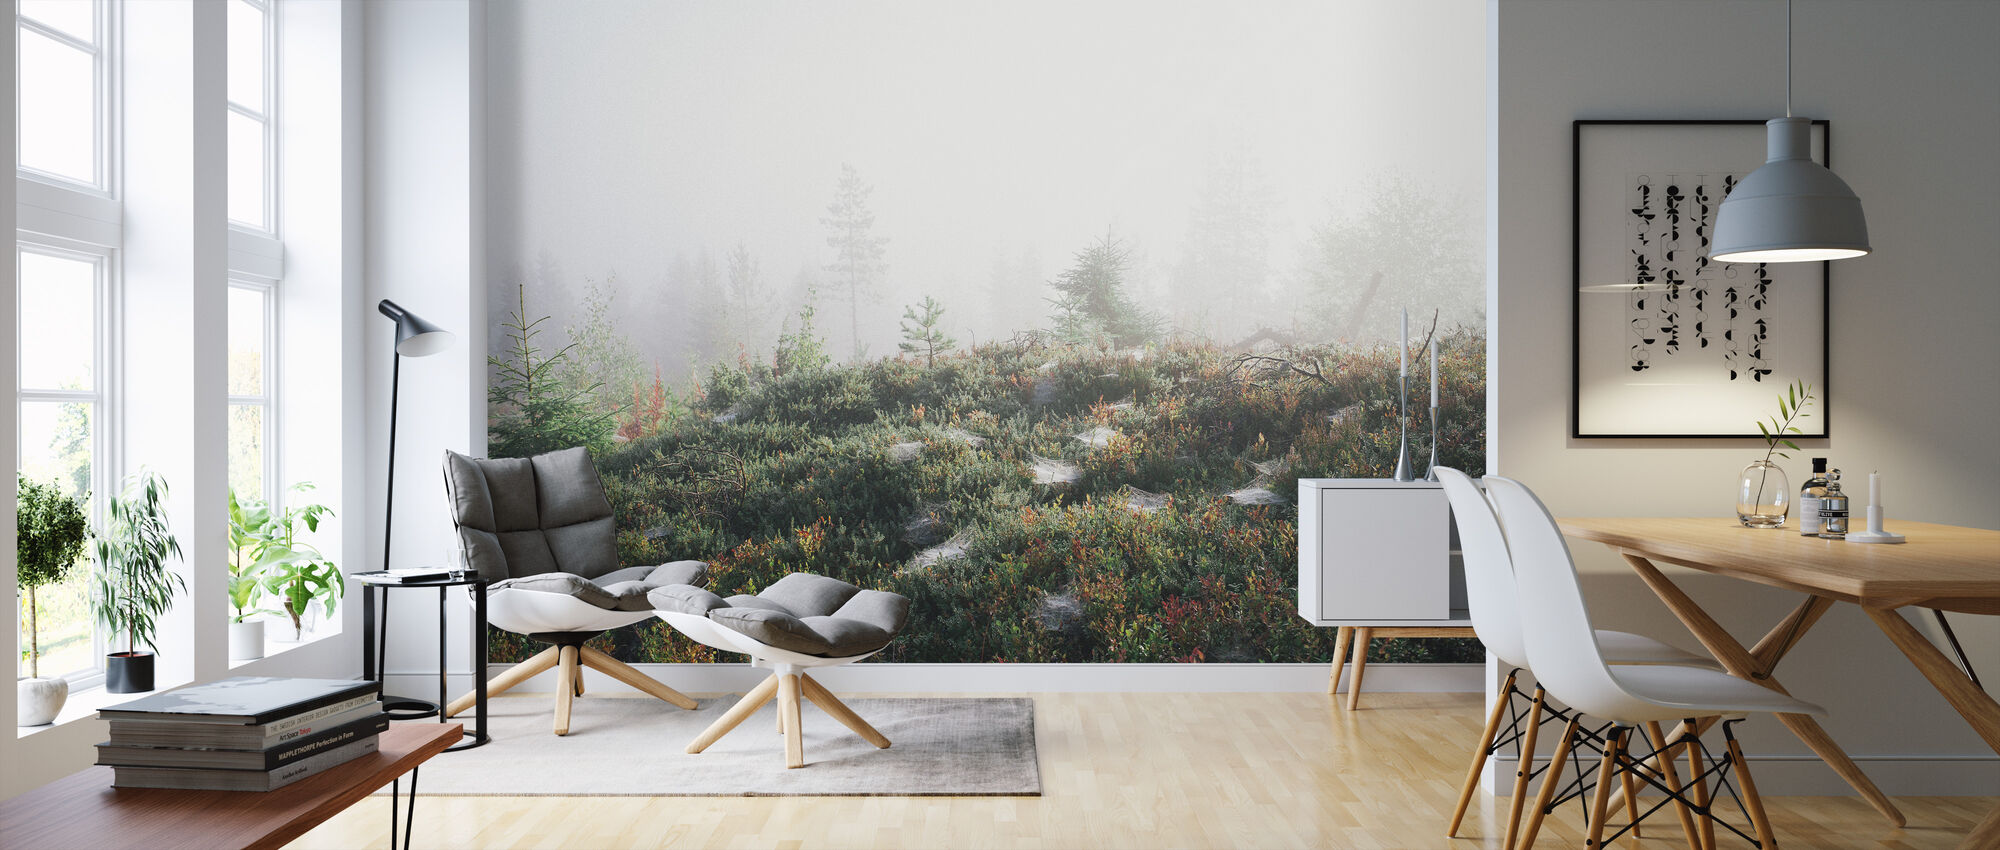 Morning Haze at the Mountain - Wallpaper - Living Room